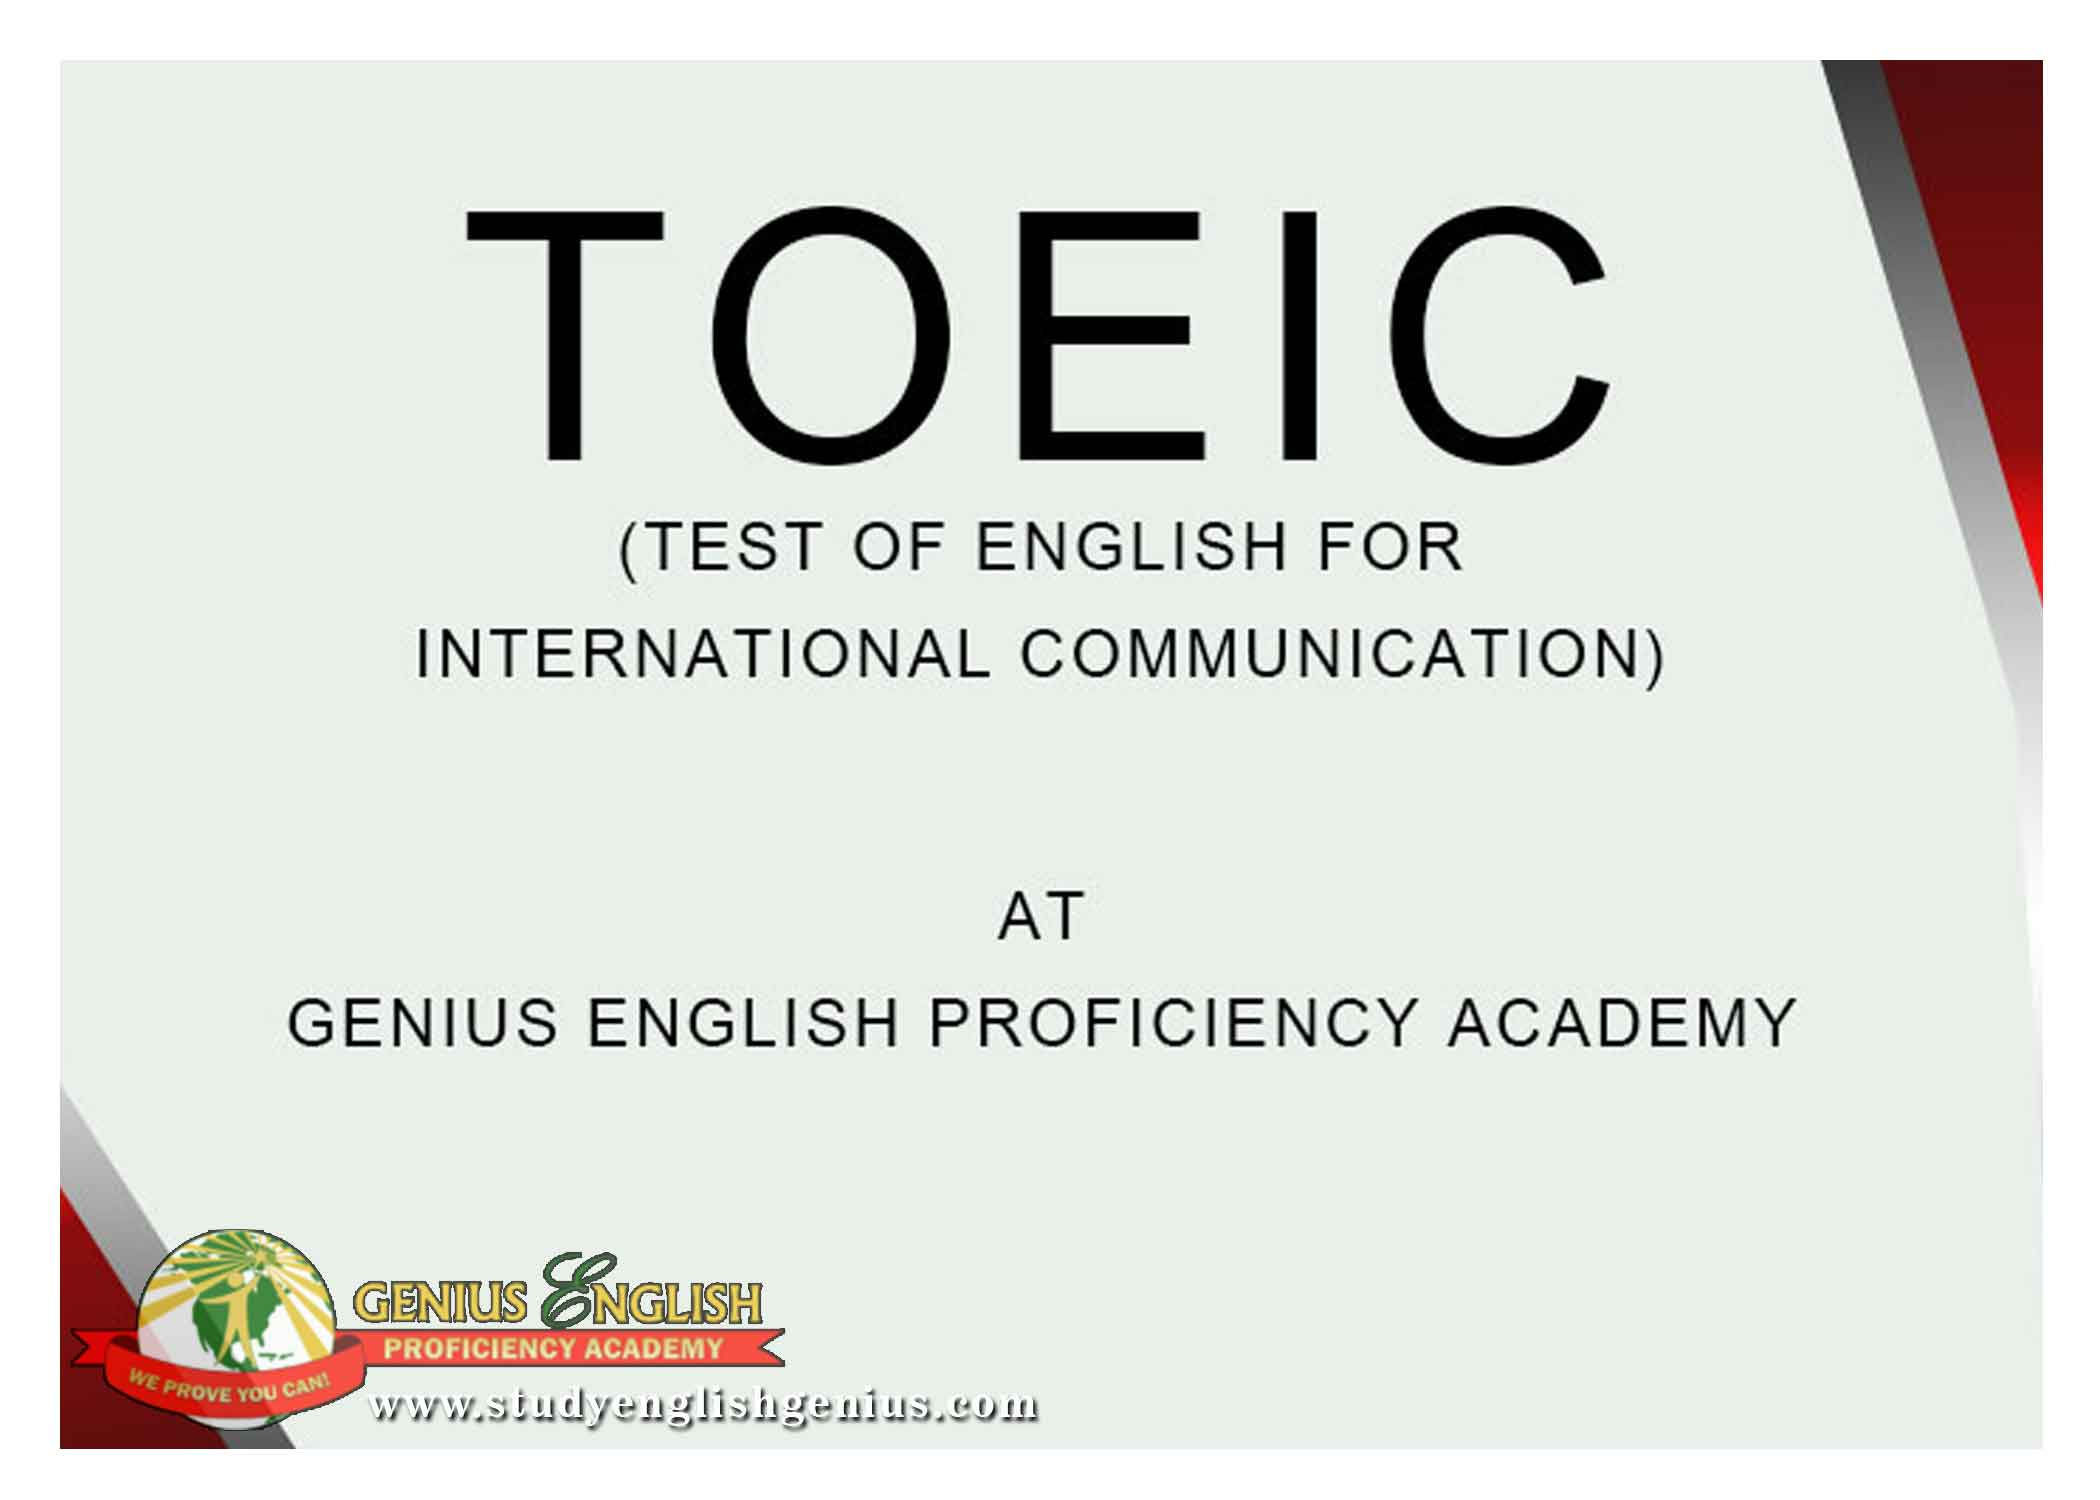 ielts in the philippines - toefl in the philippines